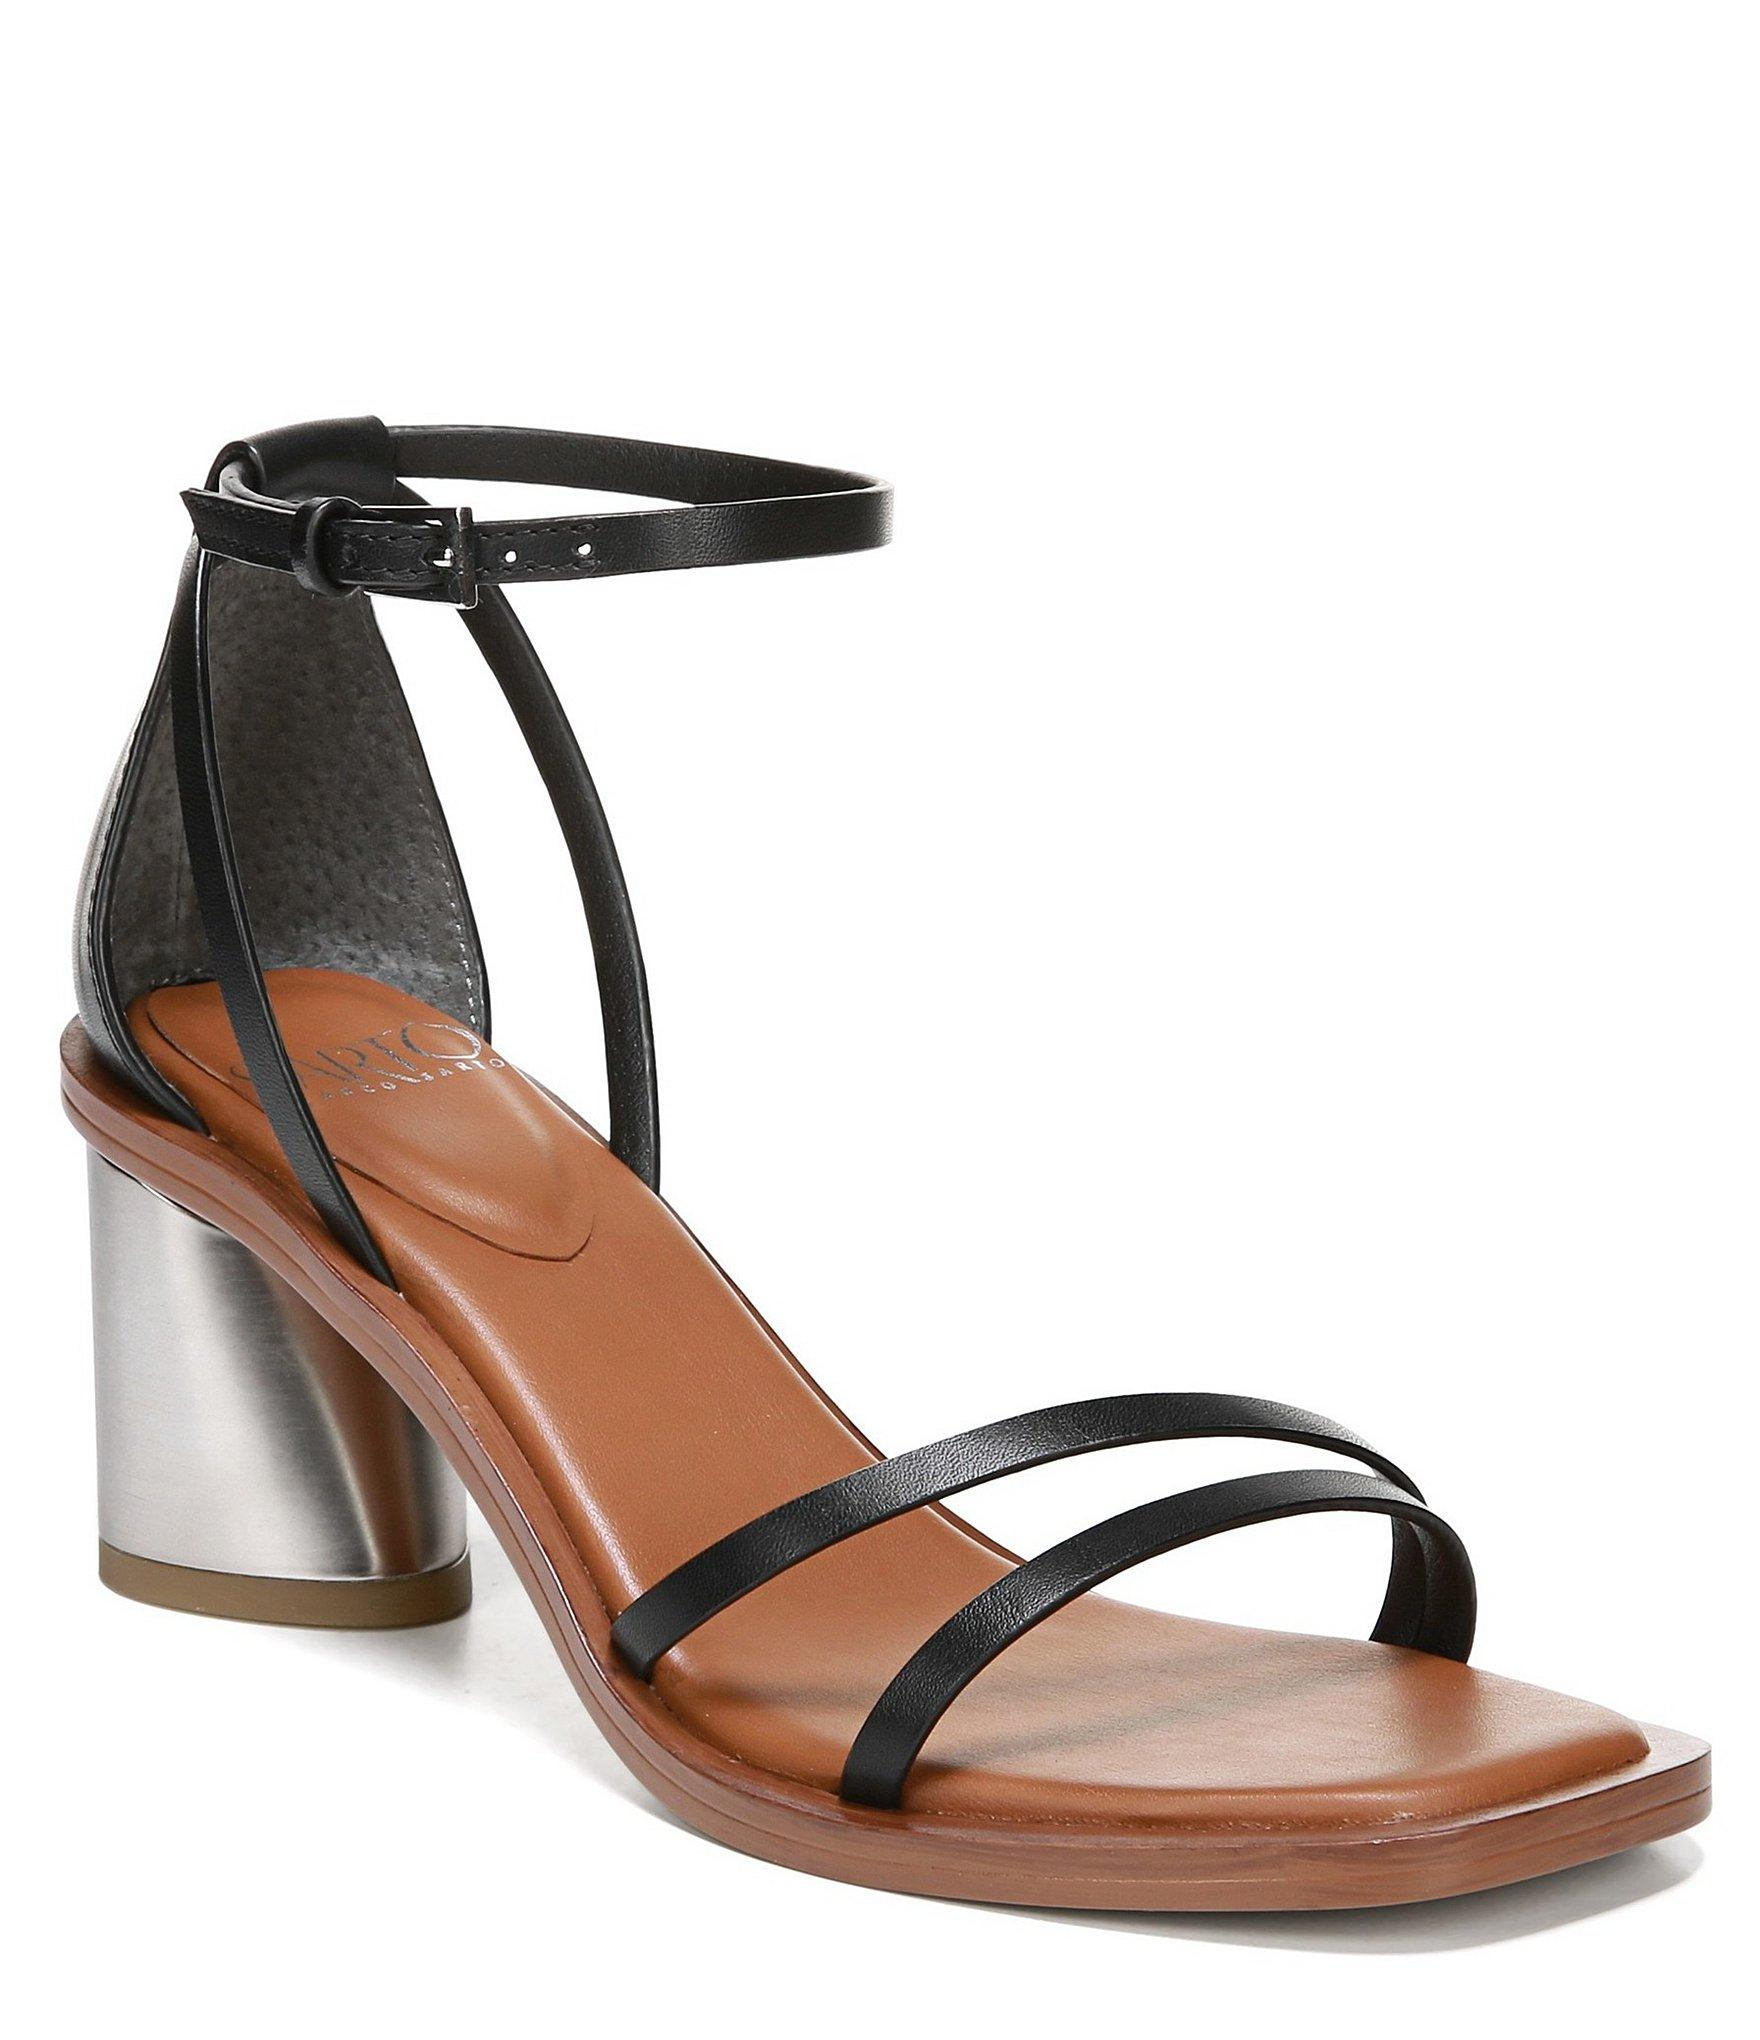 aff0c79a8e1 Lyst - Franco Sarto Sarto By Ronelle Leather Block Heel Sandals in Black